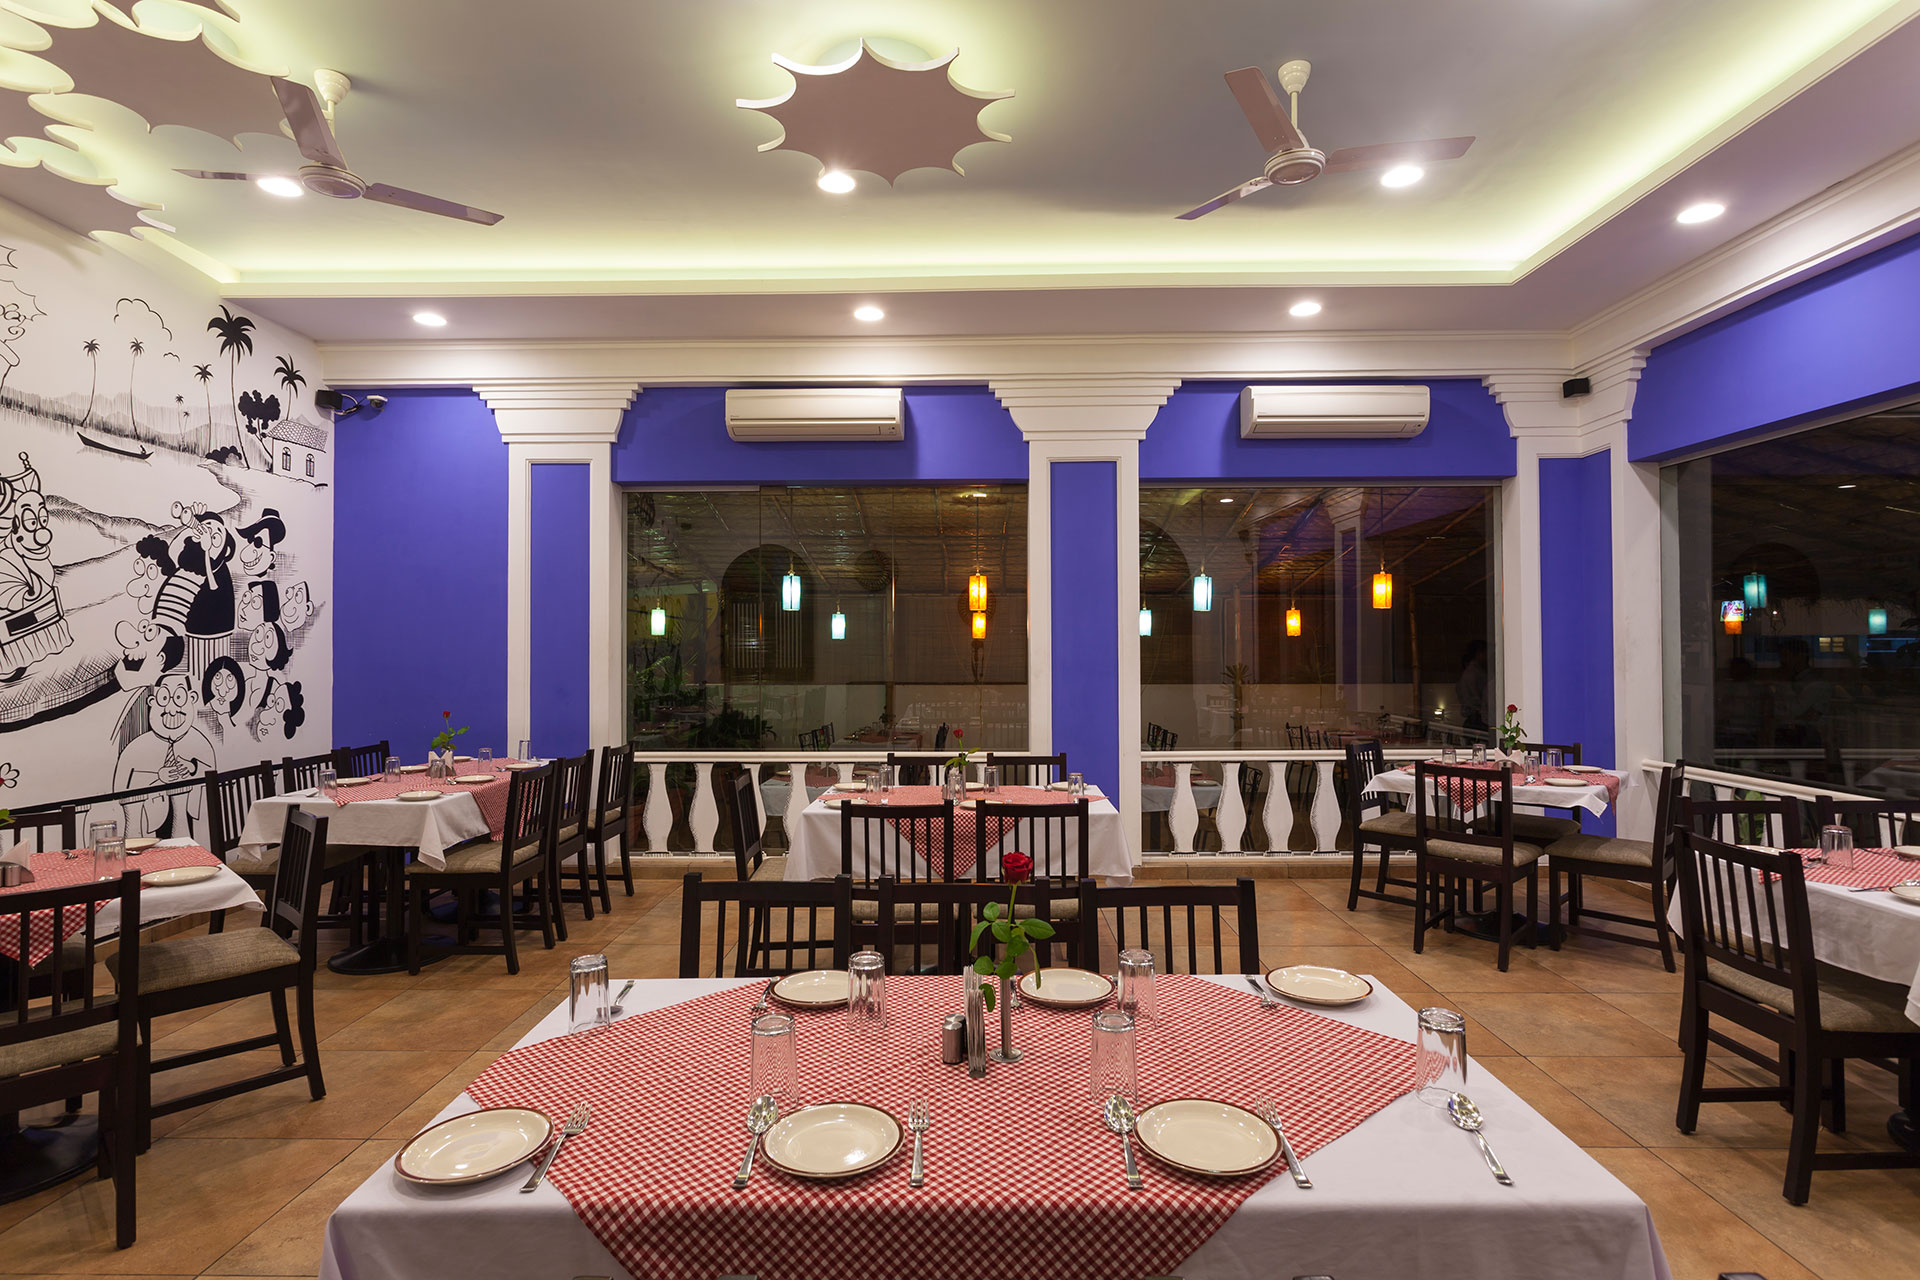 Veg And Non-Veg, Sea Food Restaurant in Kolhapur